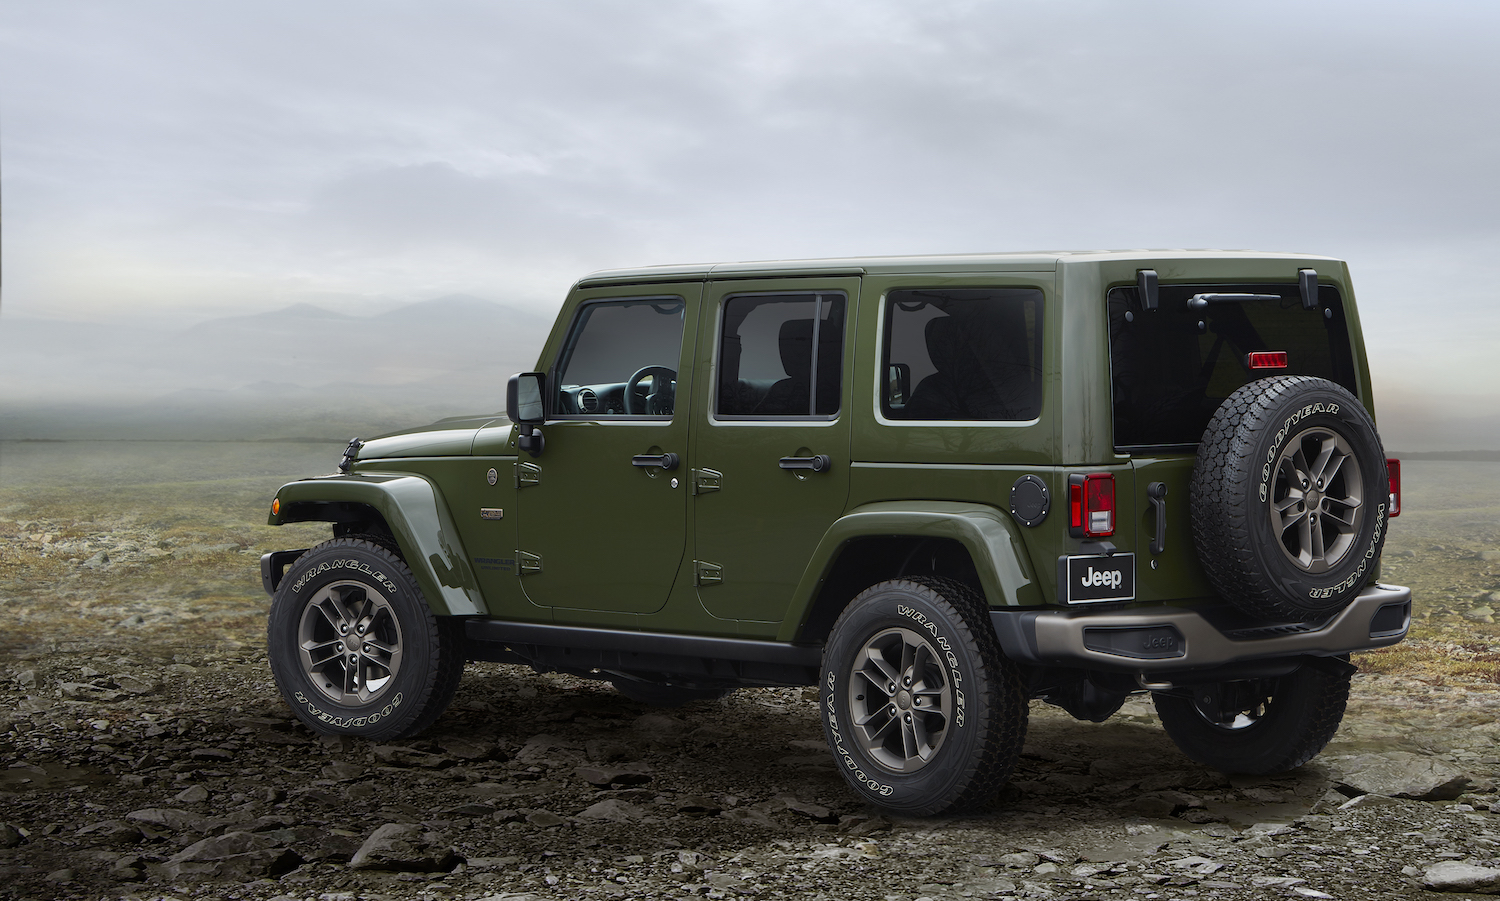 sahara photo wrangler tn vehicle nashville suv for sale jeep anniversary details unlimited in